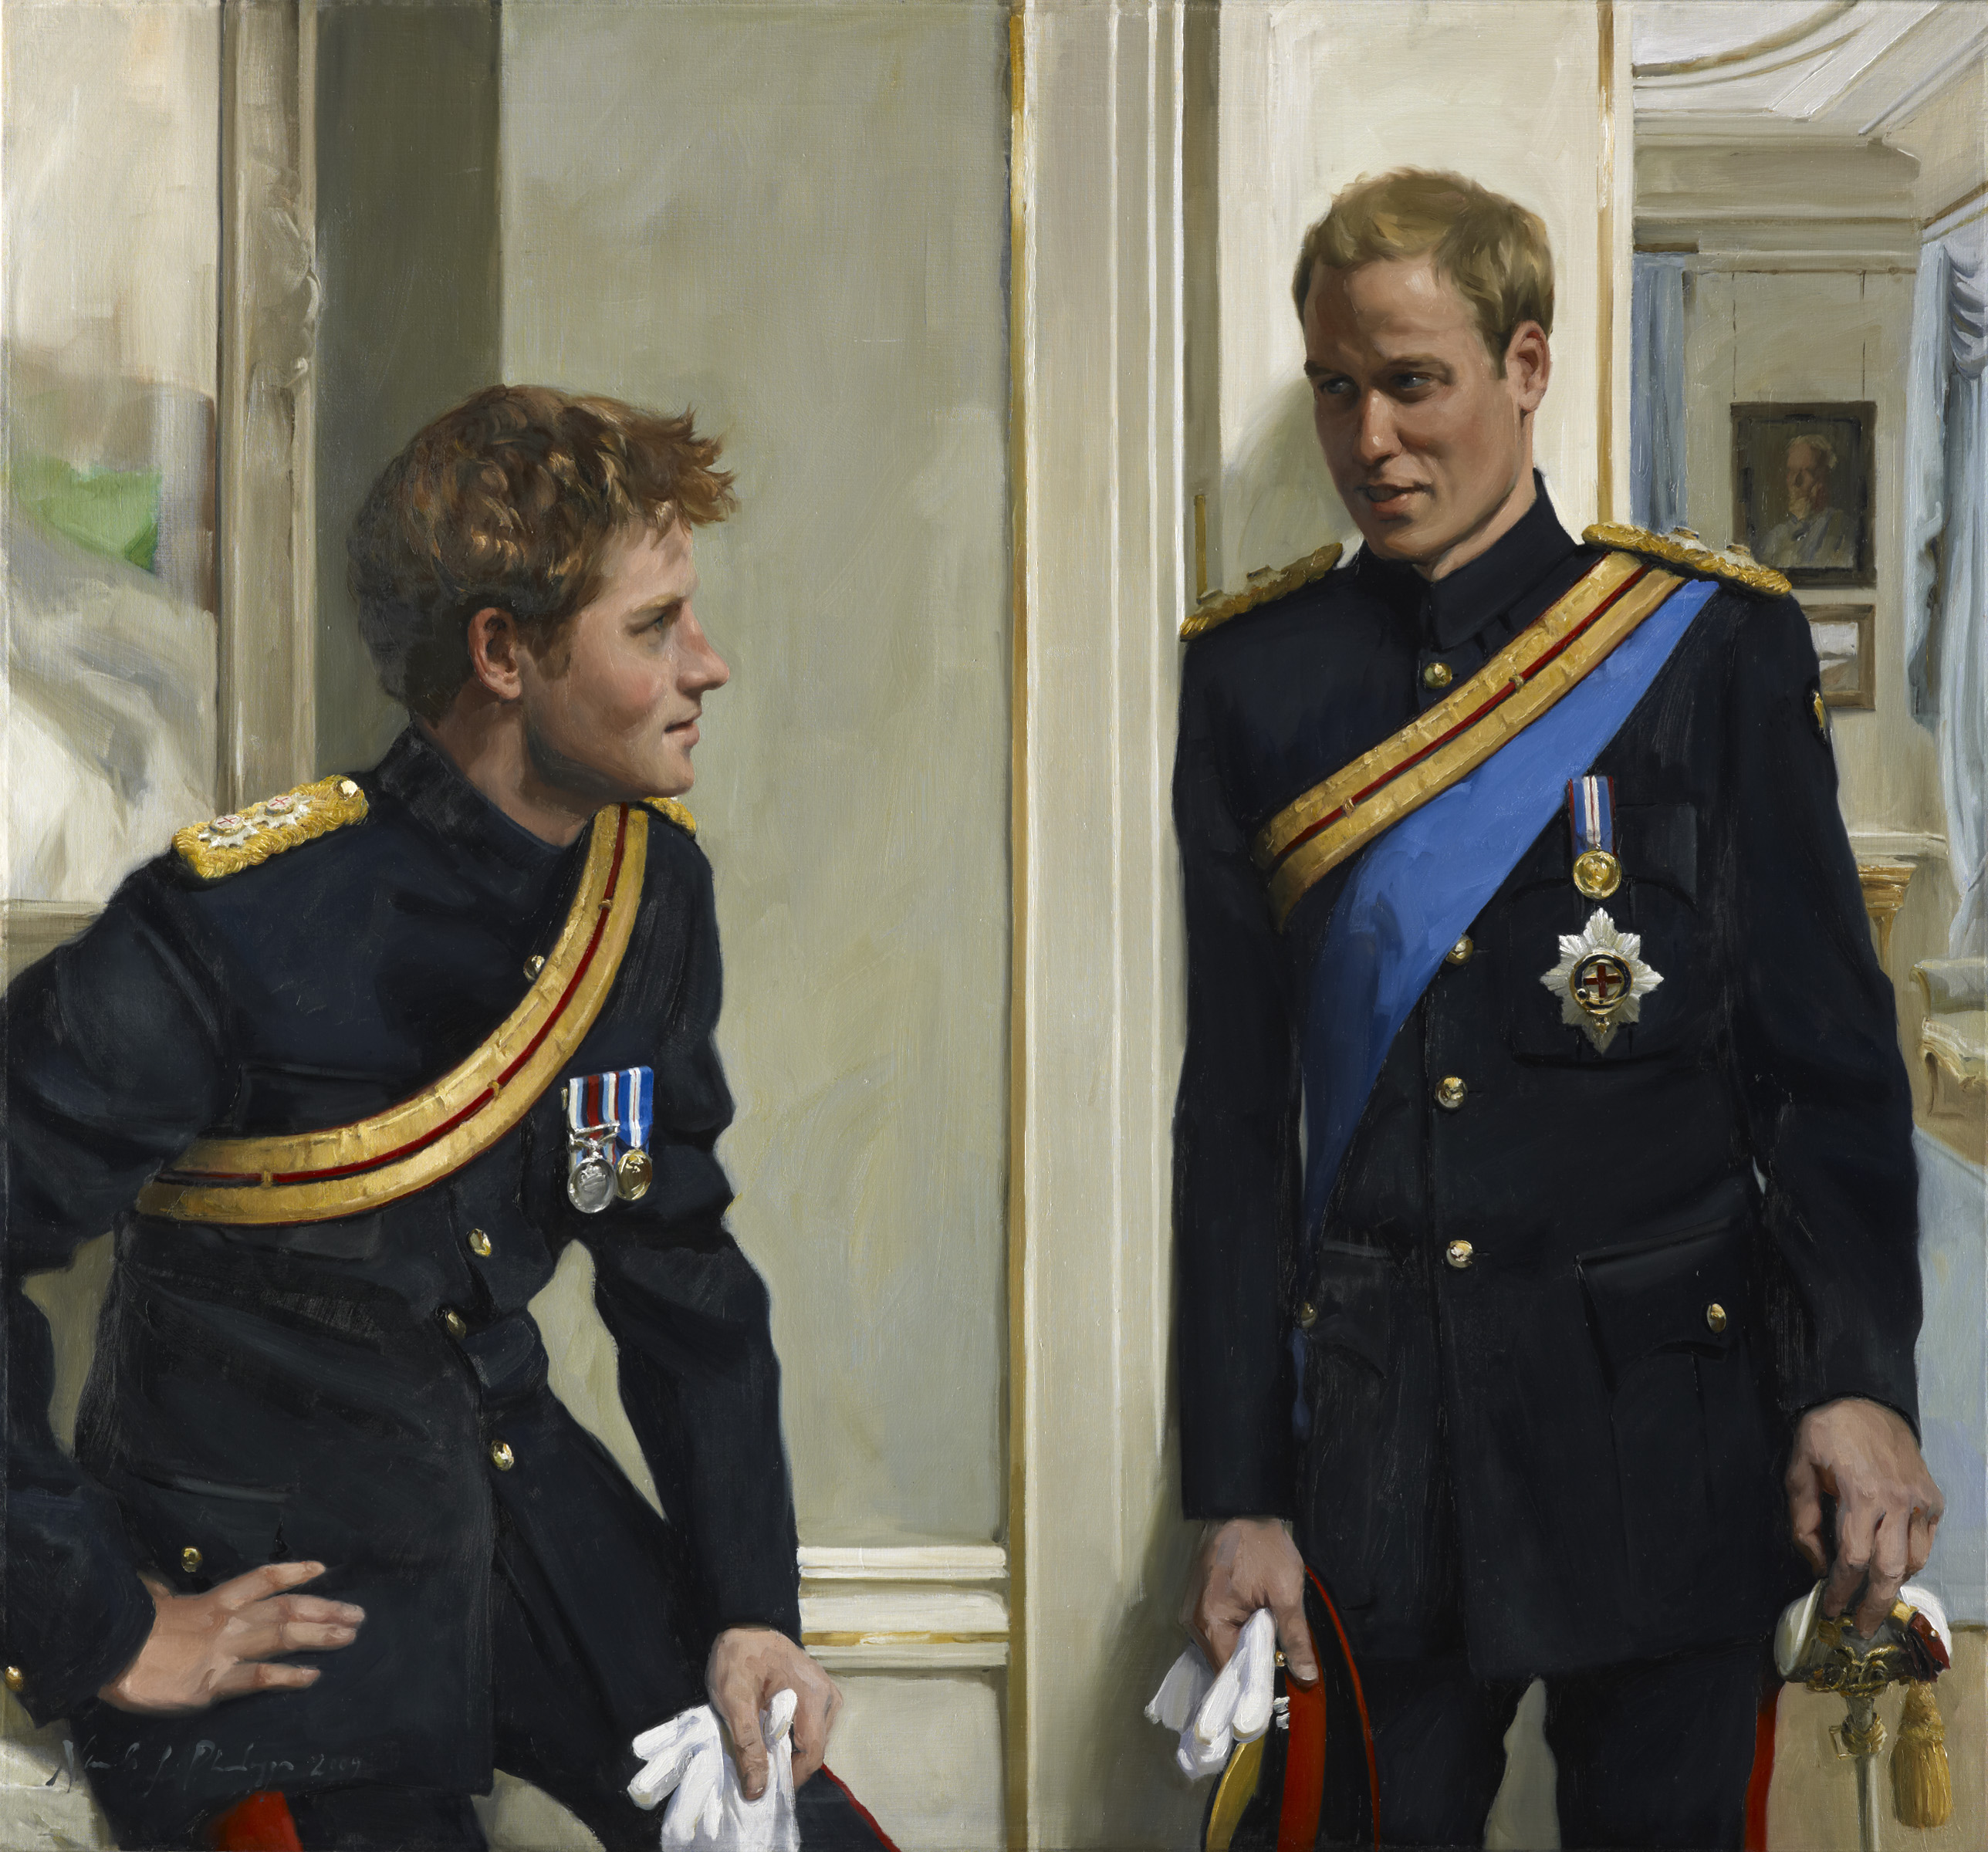 Prince William, (later Duke of Cambridge), Prince Harry (later Duke of Sussex) By Nicola Jane ('Nicky') Philipps, 2009  © National Portrait Gallery, London